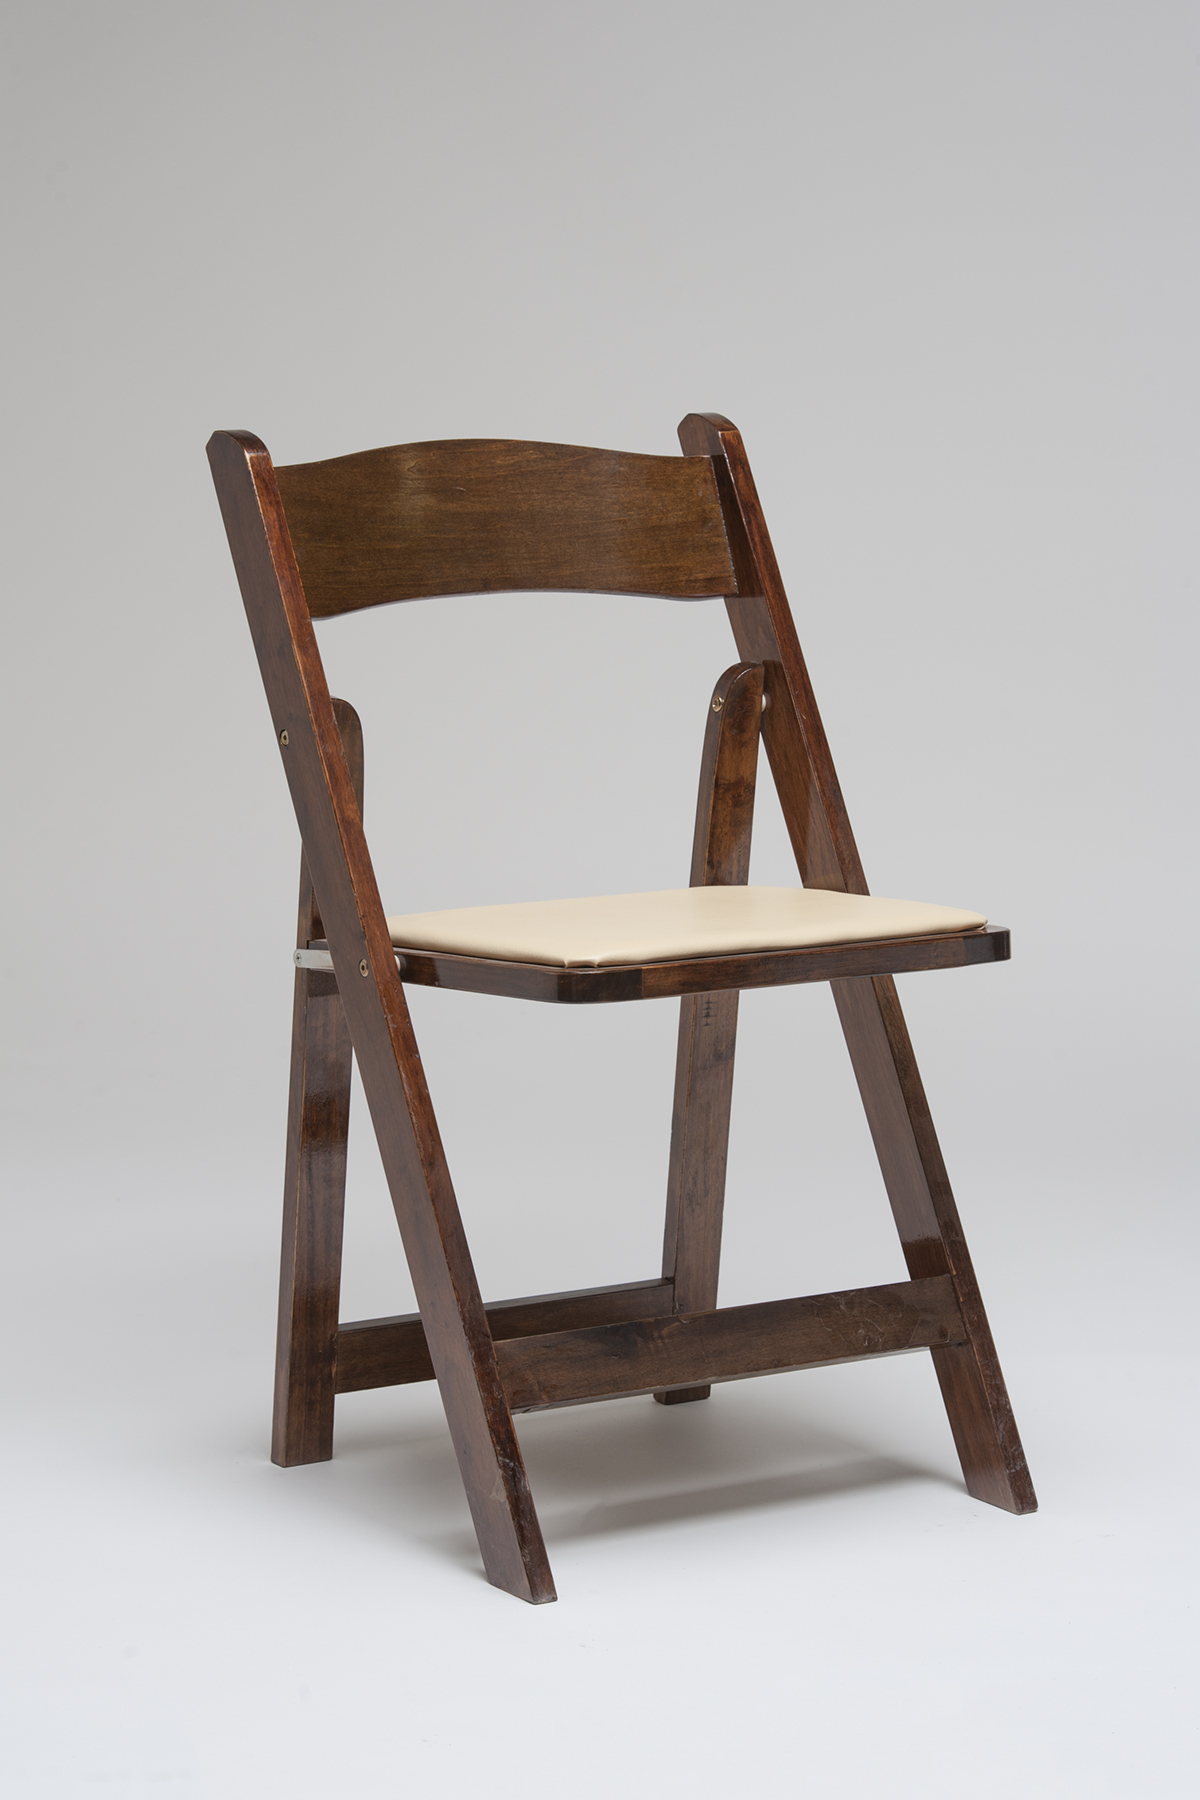 Fruitwood garden chair